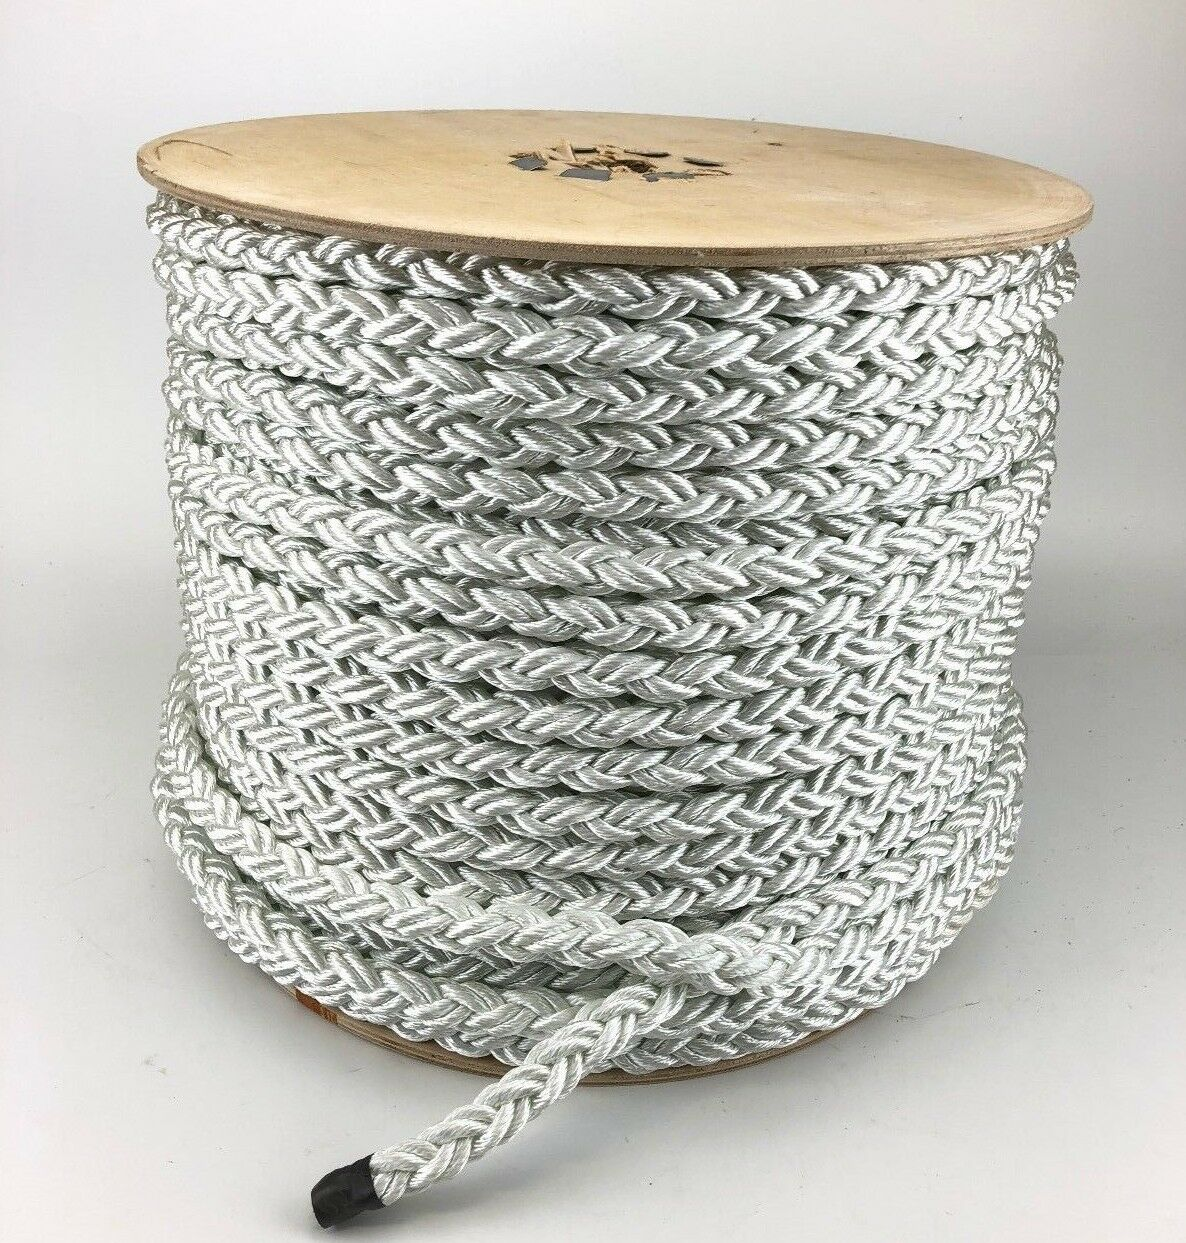 10mm 8 Strand White Nylon Rope x 100m Reel,Mooring Rope Multiplait Octoplait